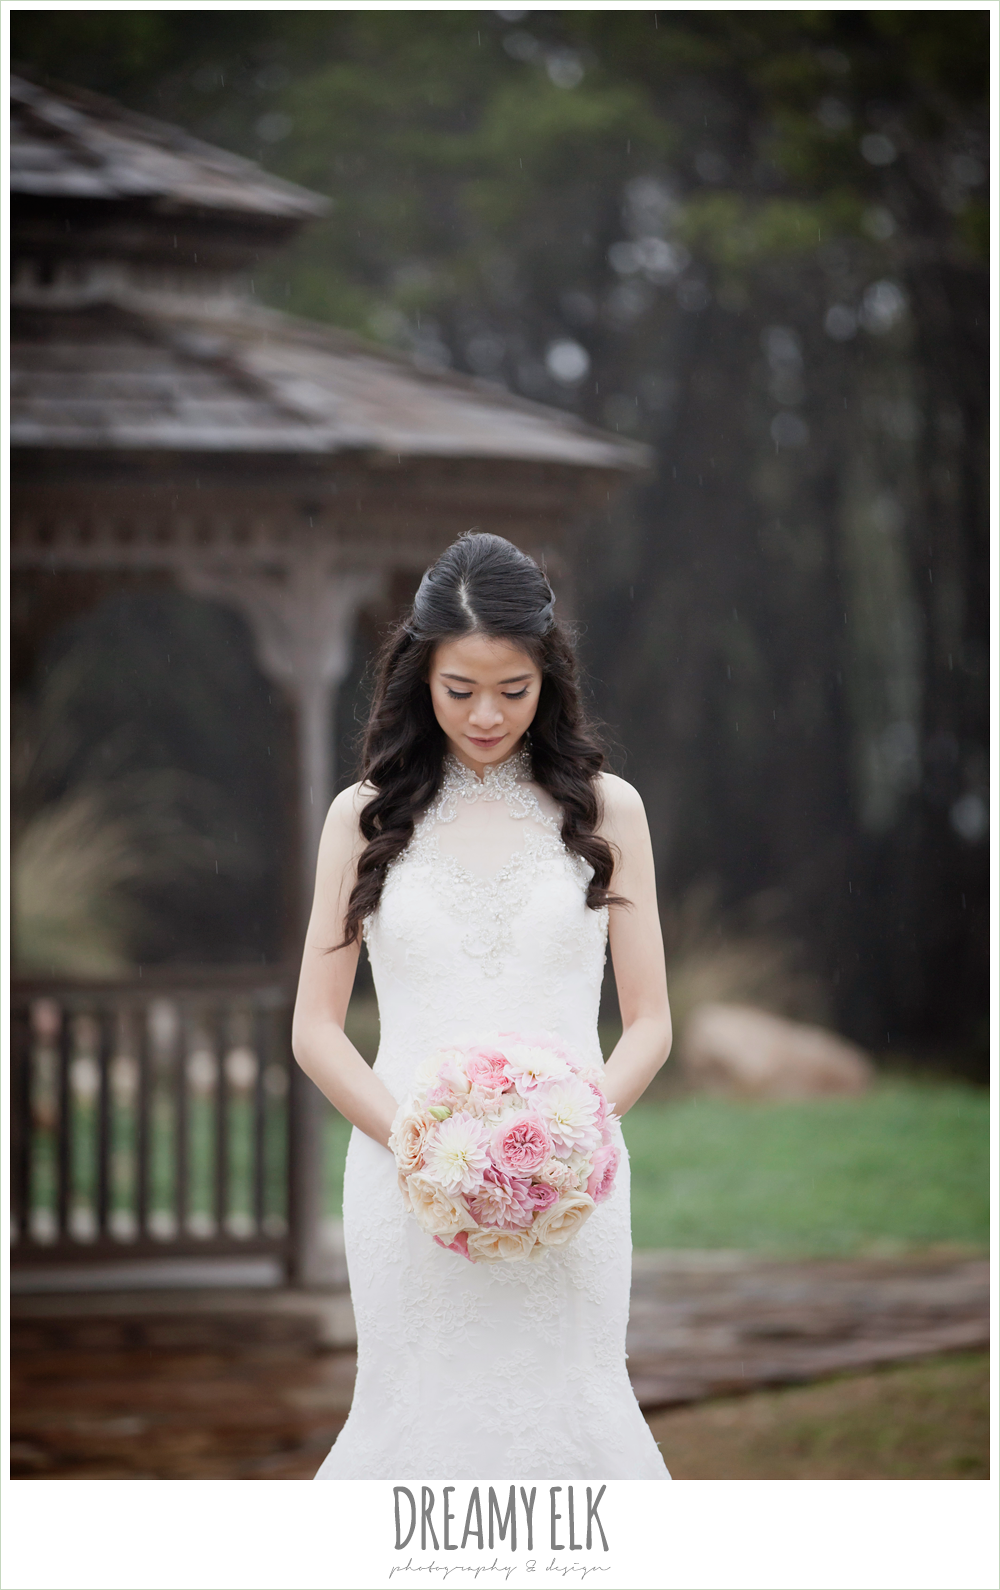 high necked wedding dress, foggy wedding day {dreamy elk photography and design}